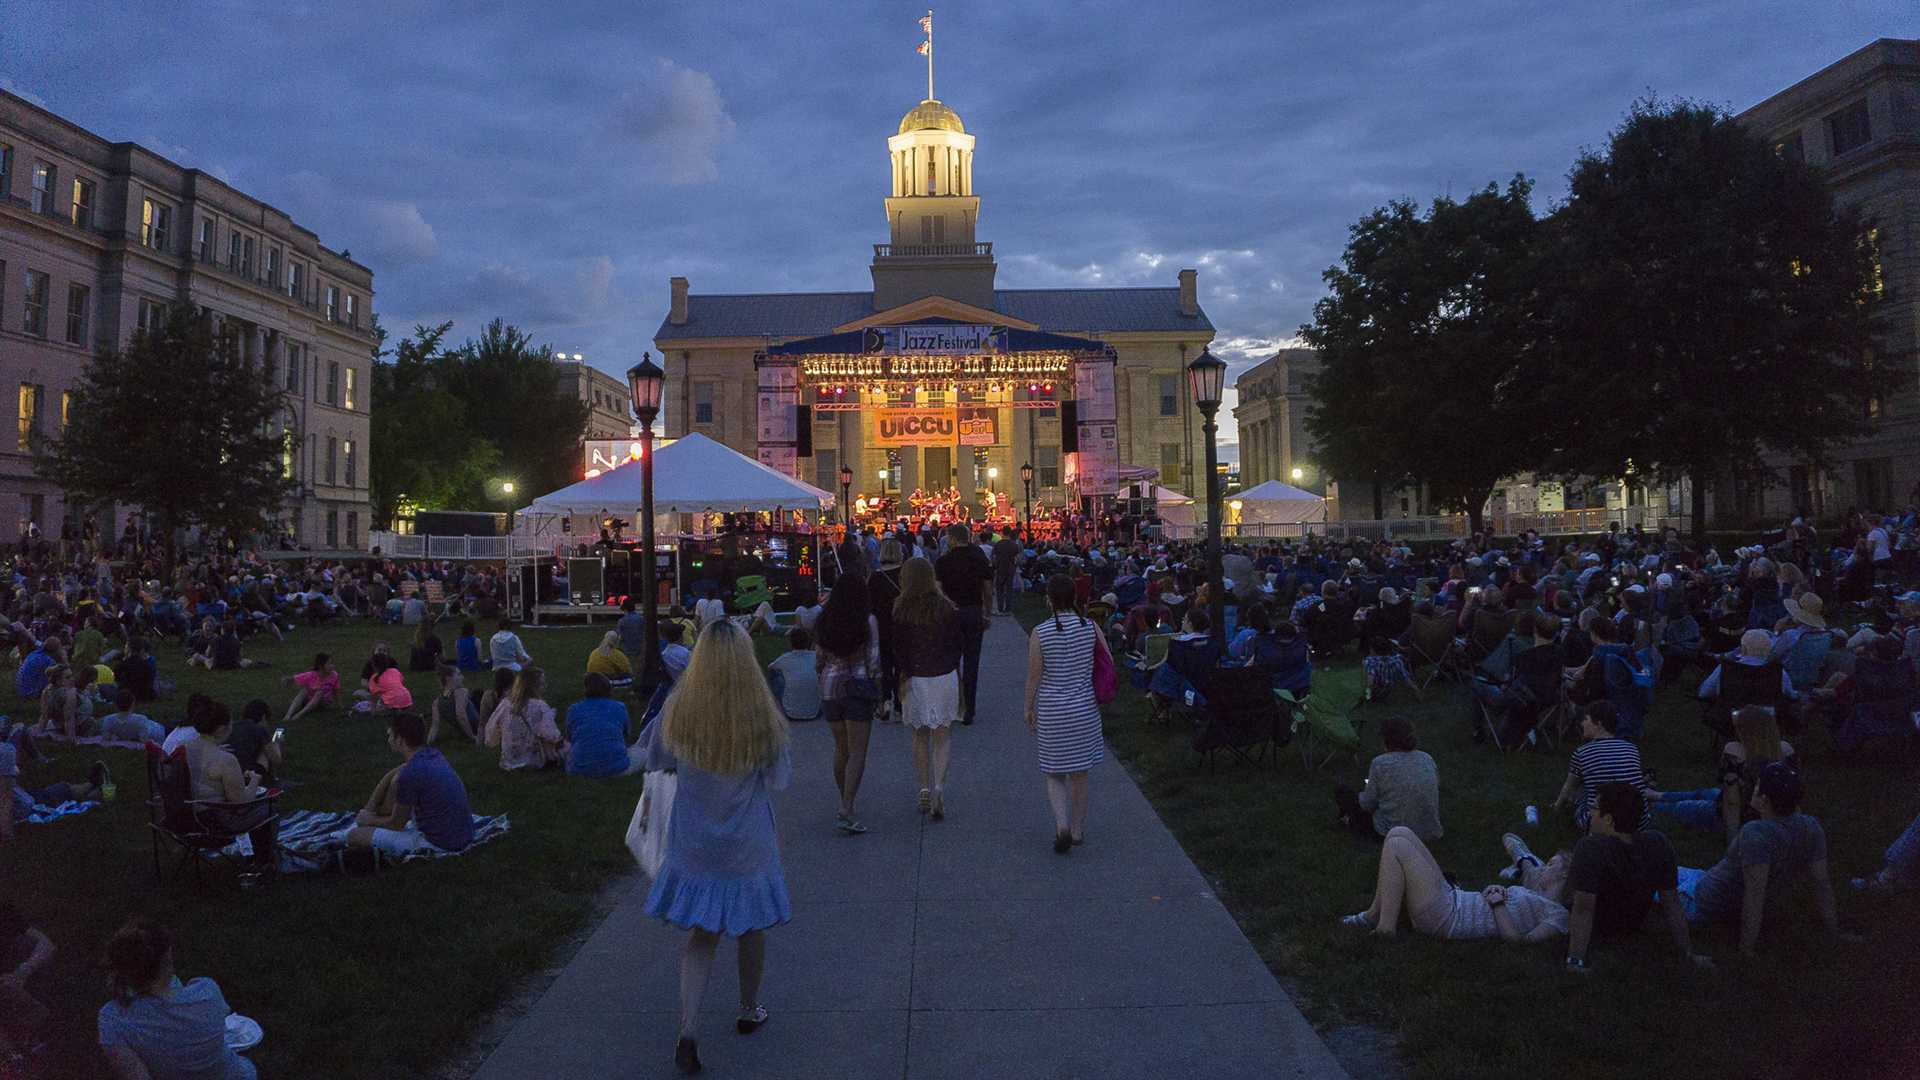 Spectators head to their seats for the headlining act during the night concert at the 2017 Jazz Fest on June 30th 2017. (File Photo/The Daily Iowan)